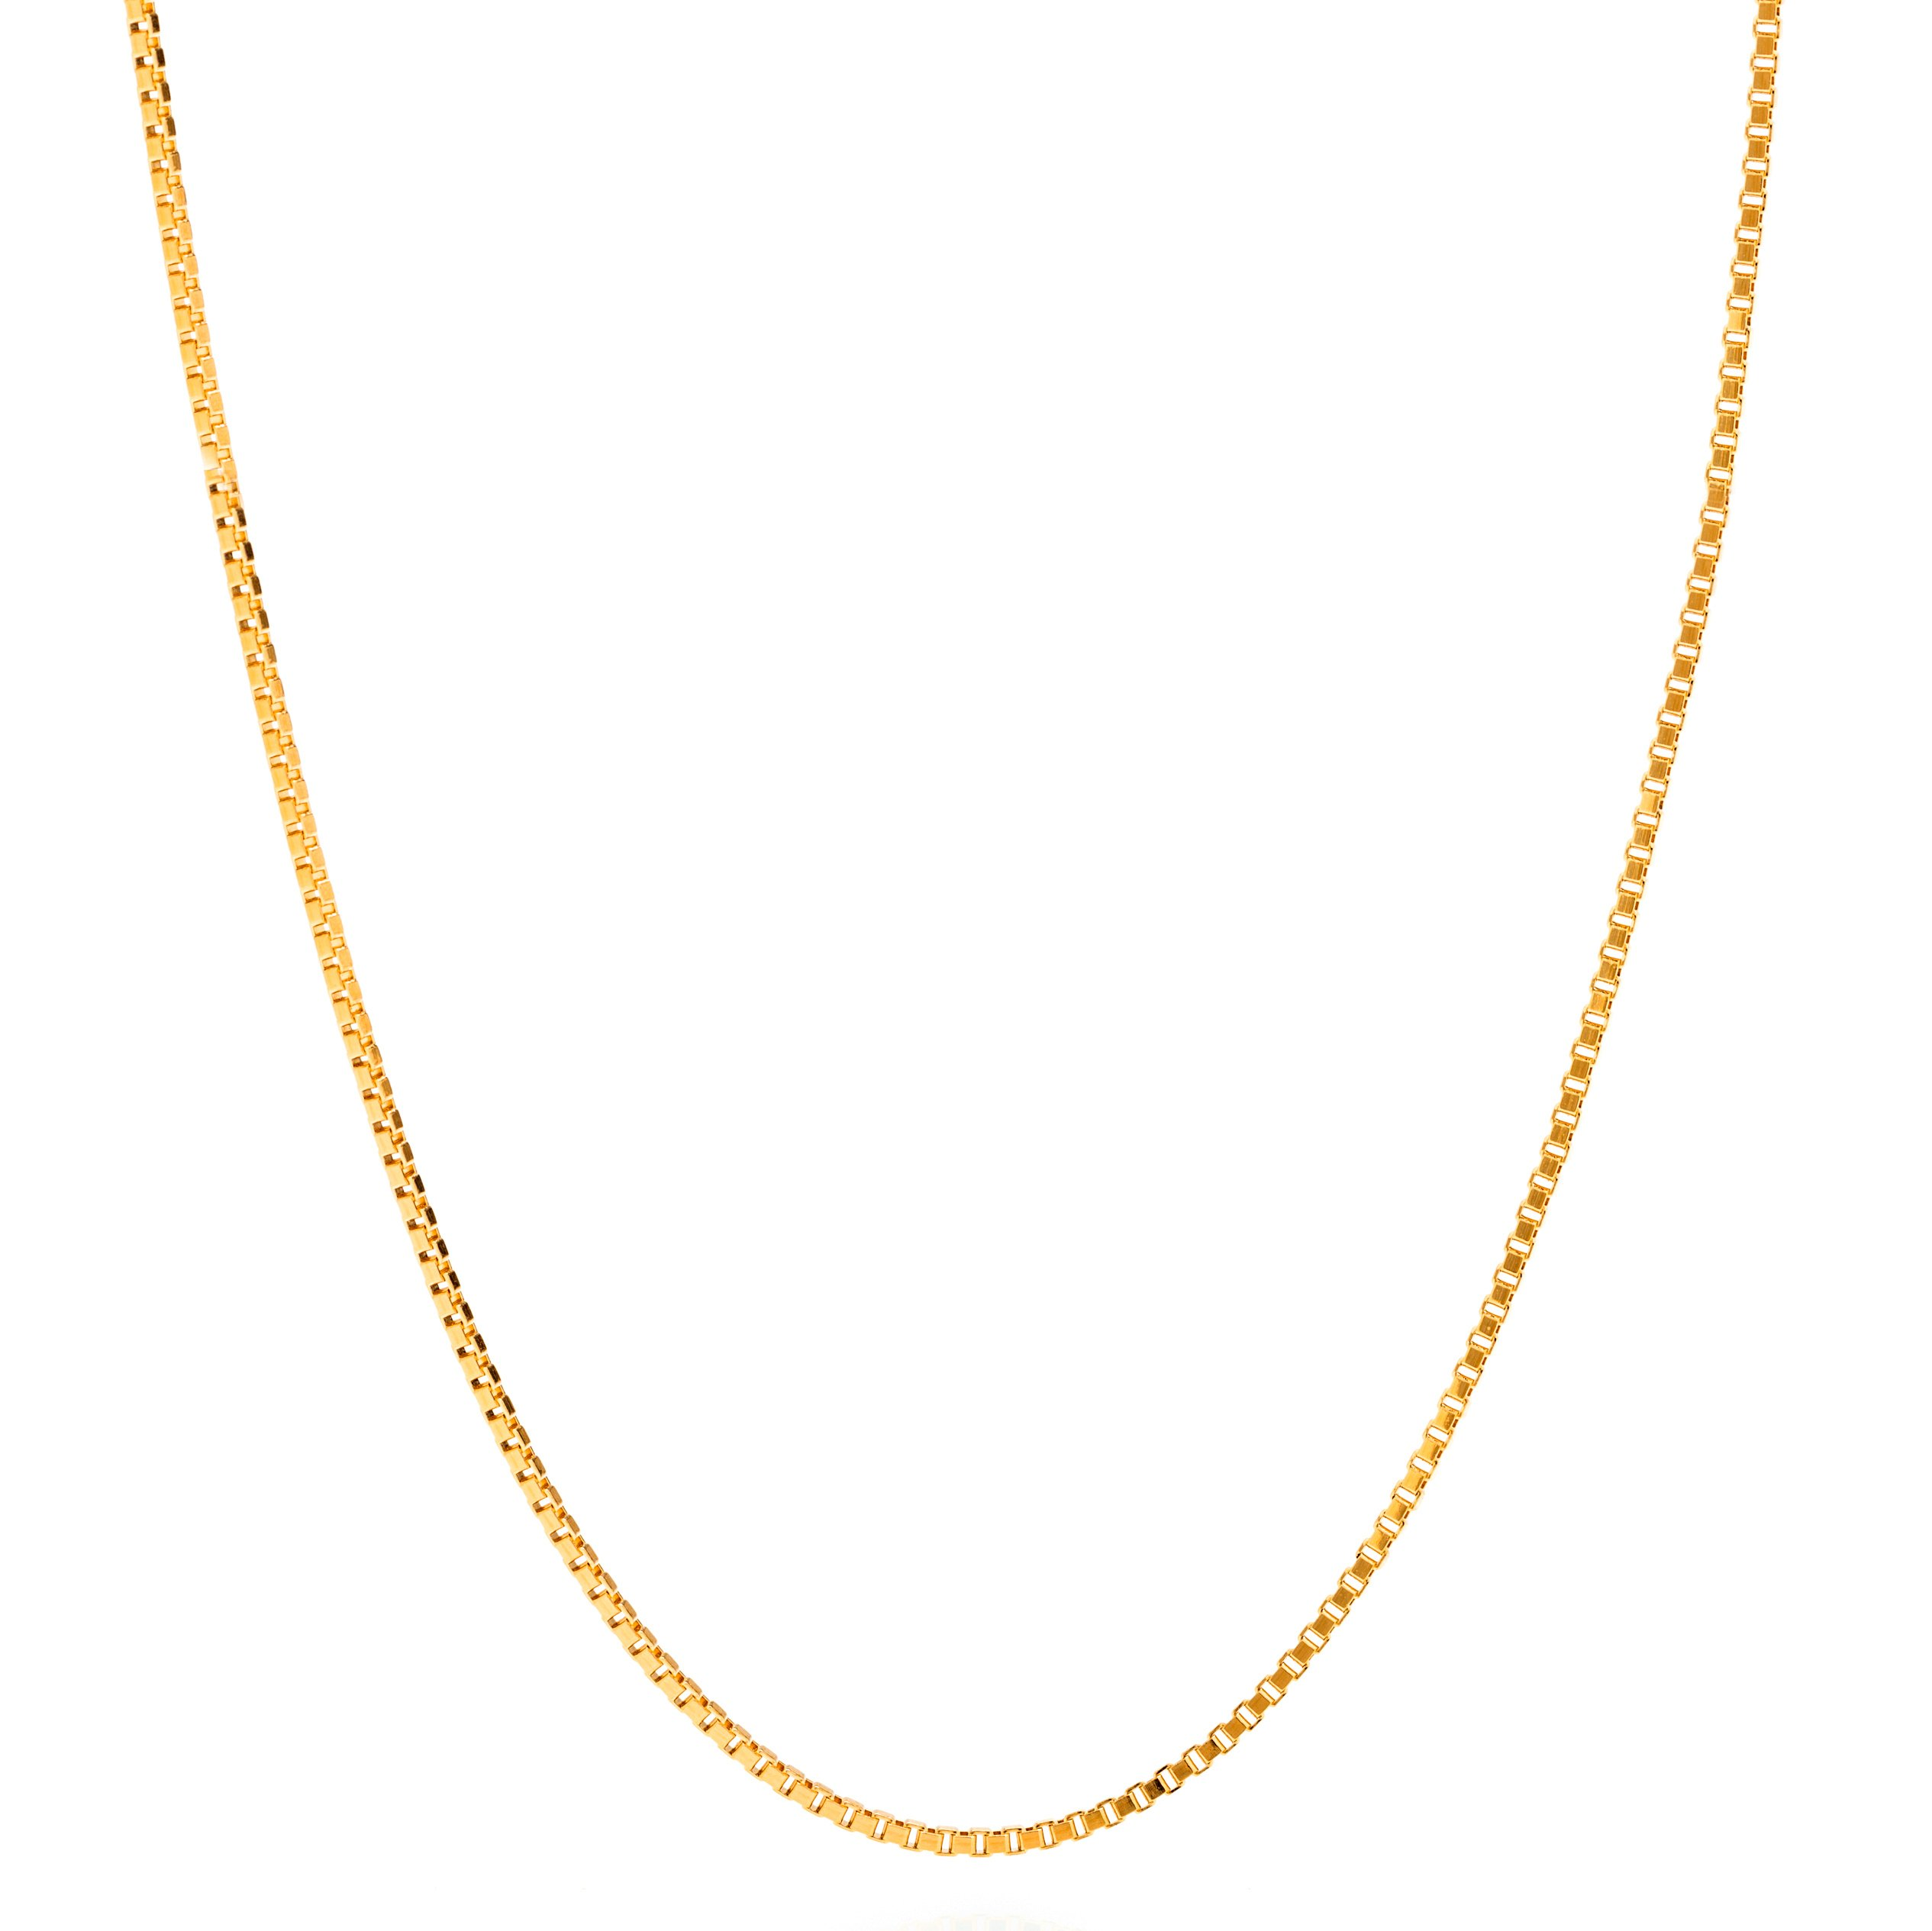 Lifetime Jewelry Box Chain 1.4 mm Pendant Necklace 24K Gold Plated - Made Thin For Charms - Comes in Pouch For Easy Gift Giving 20 Inches